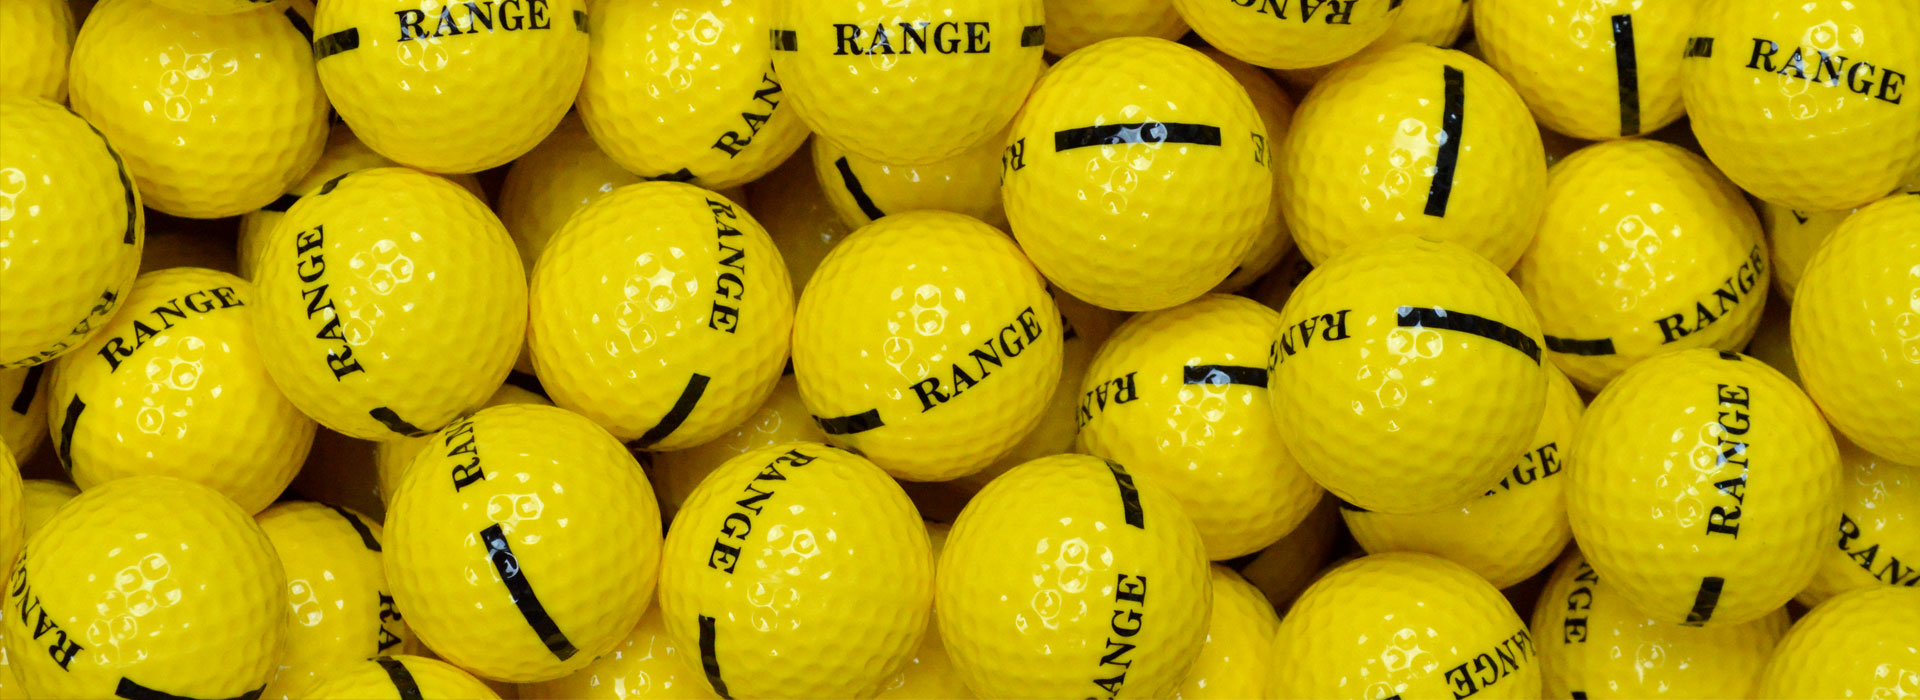 1 Piece Yellow Golf Balls